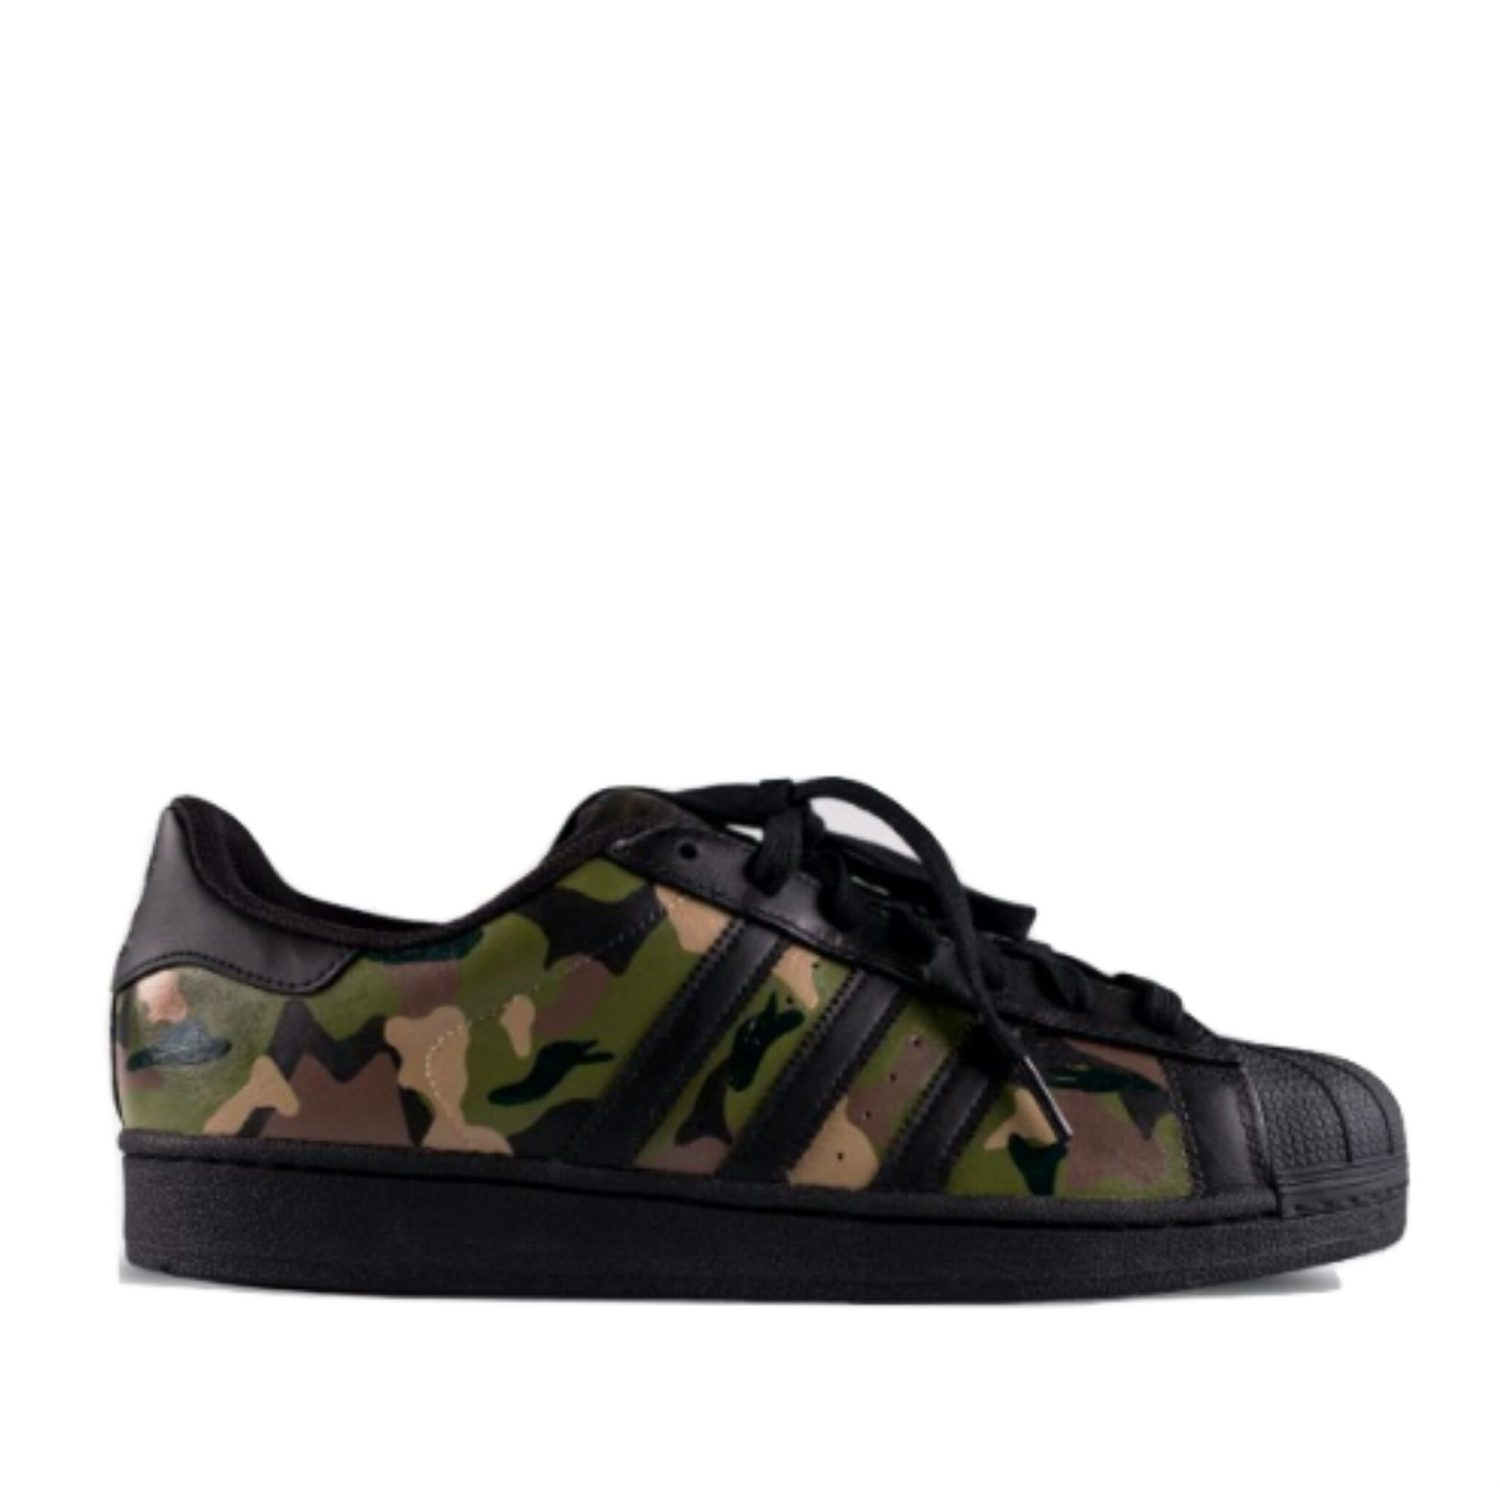 Adidas Superstar Earth Camo ...